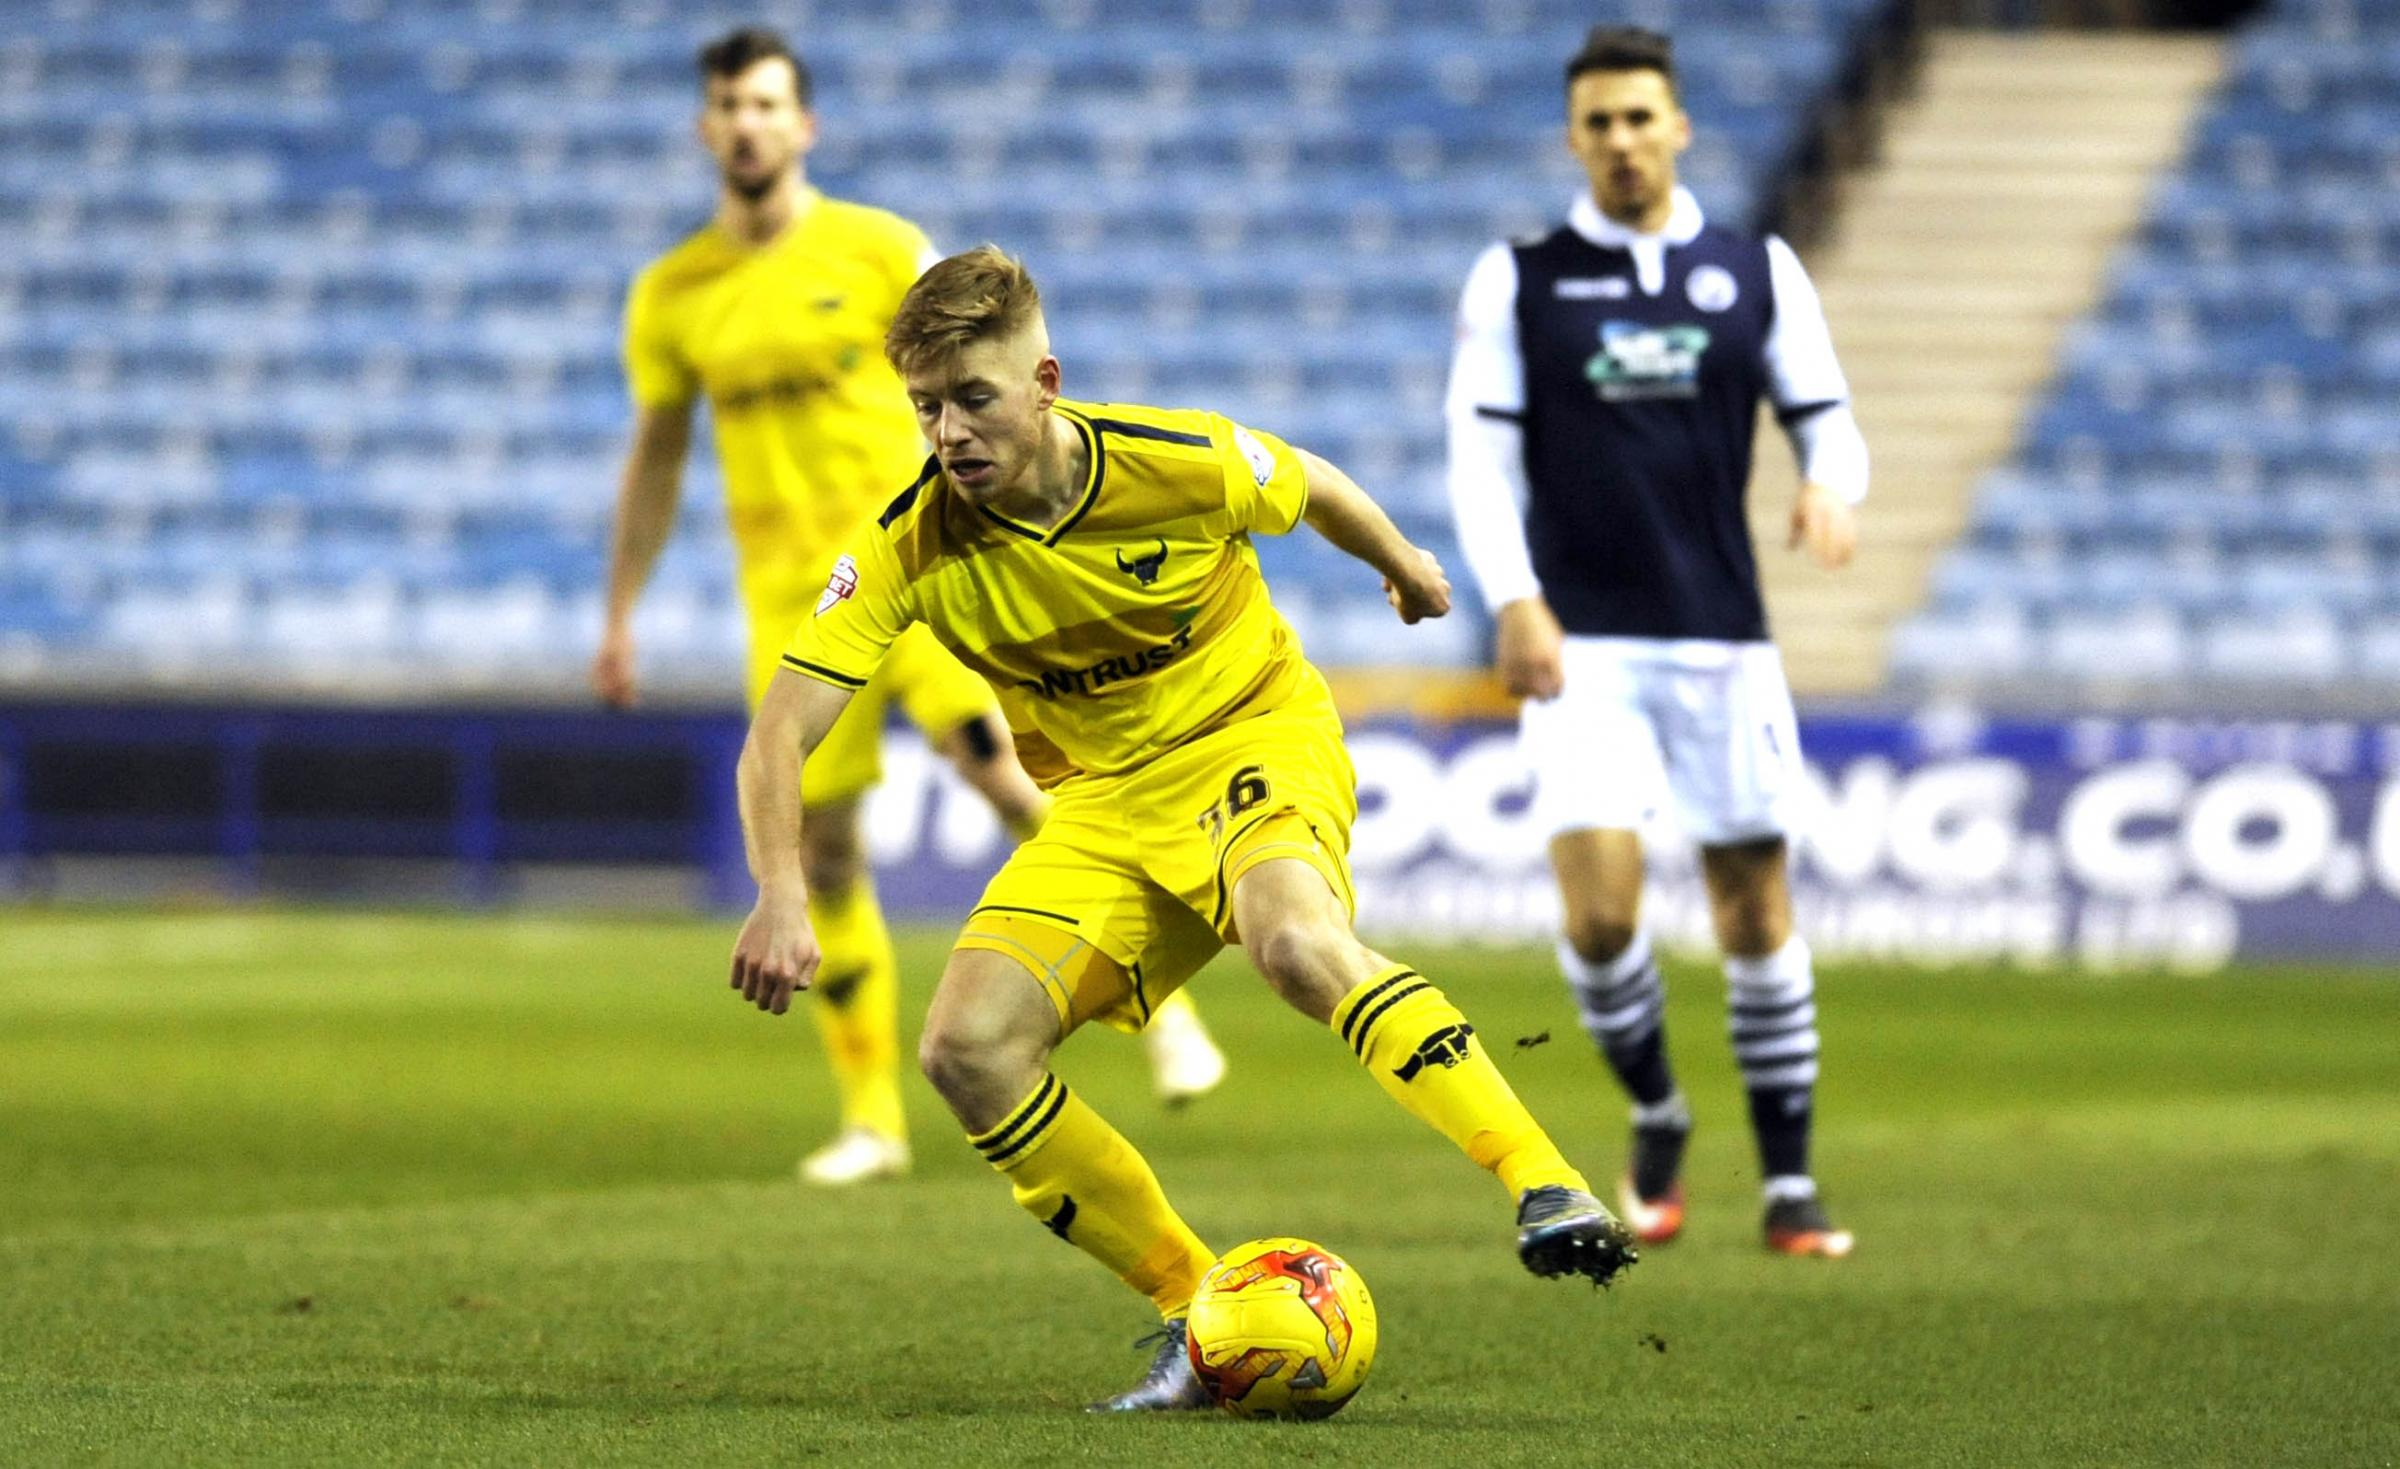 Jordan Evans in action for Oxford United at Millwall last night Picture: David Fleming